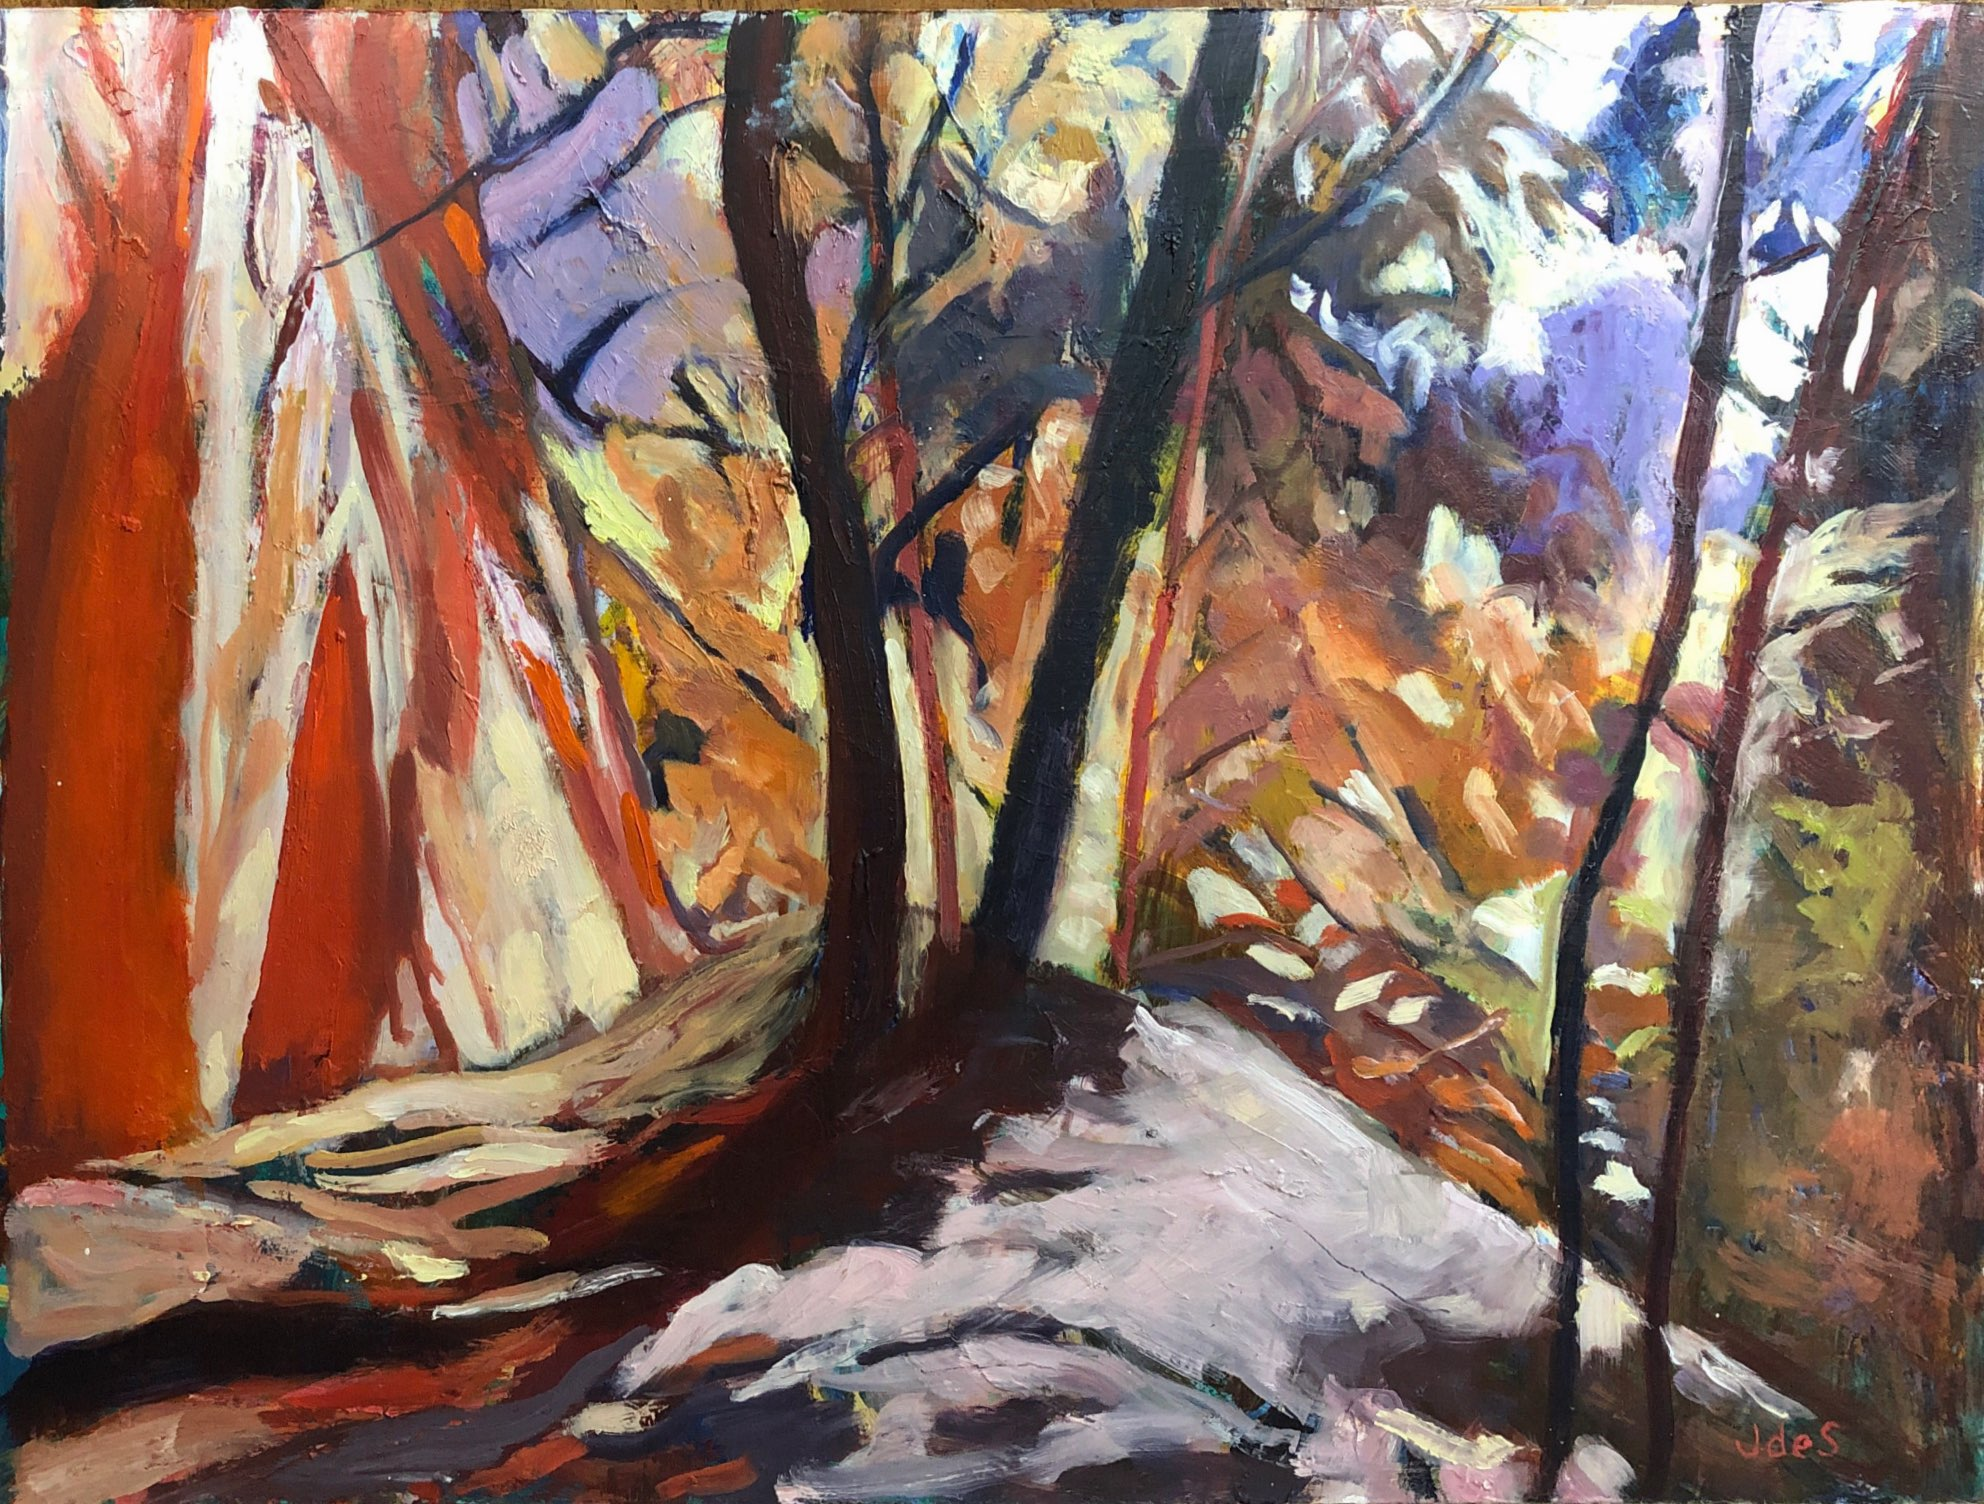 Trees on fire 51x39 oil